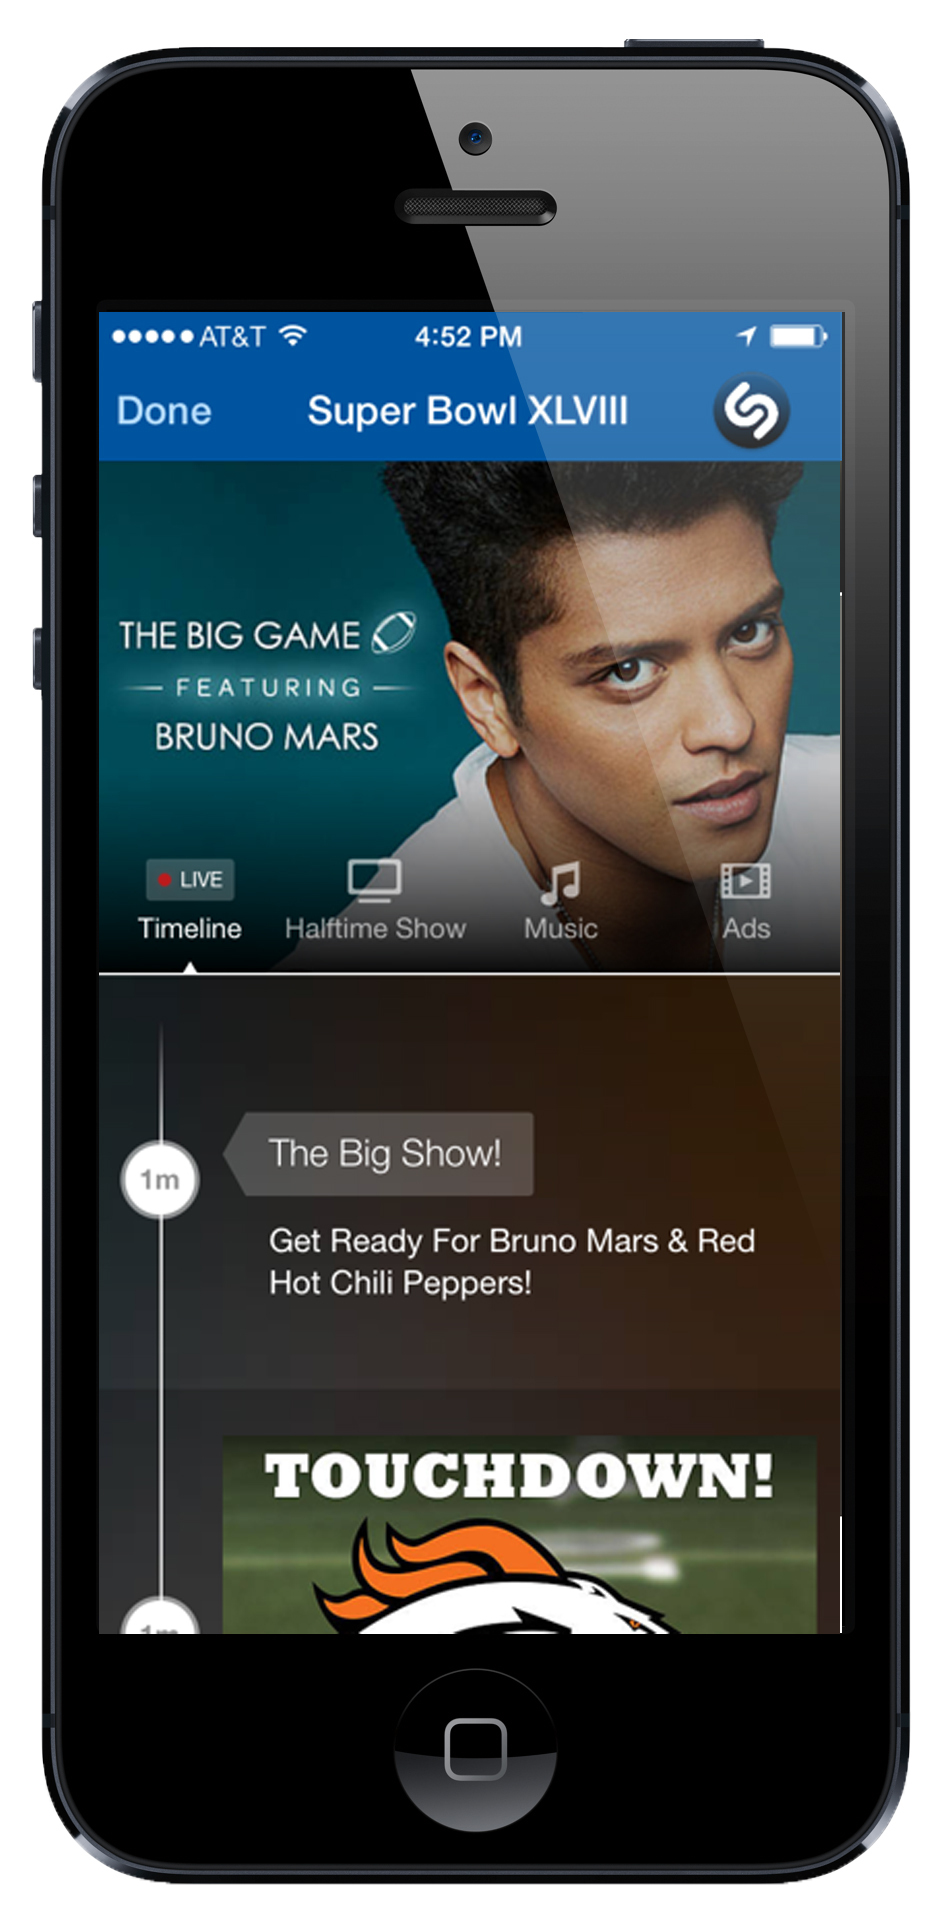 """""""Last night, we saw record levels of engagement with the Super Bowl with more than 700,000 Shazams of the game, with more than half of those happening during Bruno Mars' halftime show. Our timeline experience offered users the ability to replay the ads, catch all the new music as it was unveiled, and get exclusive content,"""" said Rich Riley, CEO. """"We were excited to have partnered with Bud Light, Jaguar and Sonos on their advertising and with Bruno Mars, Atlantic Records and Warner Music Group on the halftime show."""" (Photo: Business Wire)"""